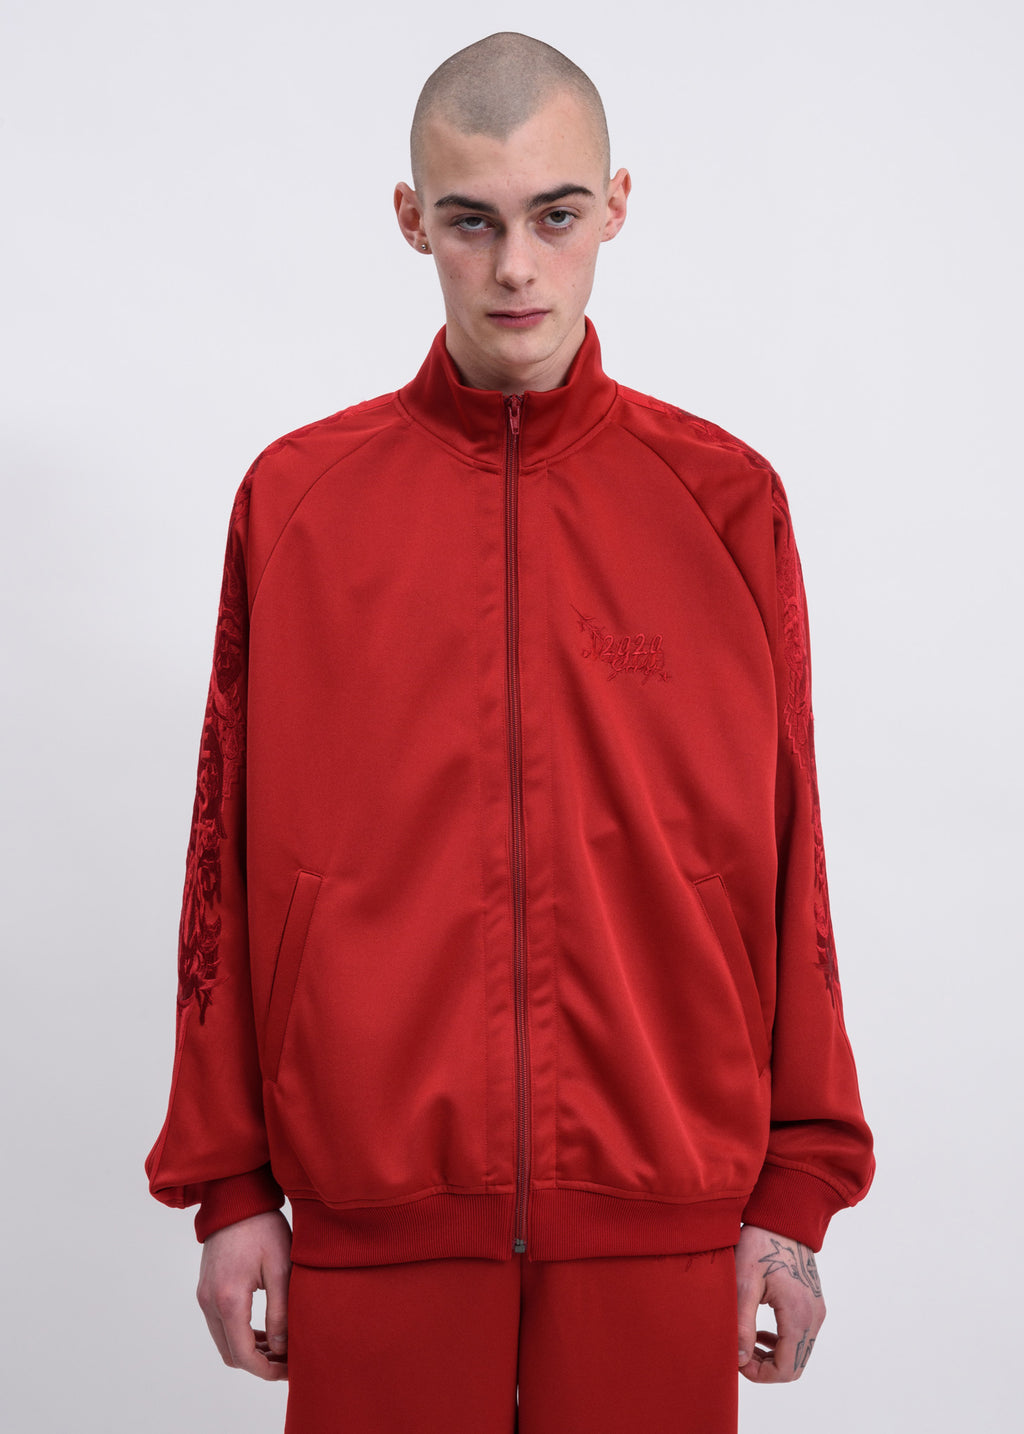 Red Chaos Embroidery Track Jacket